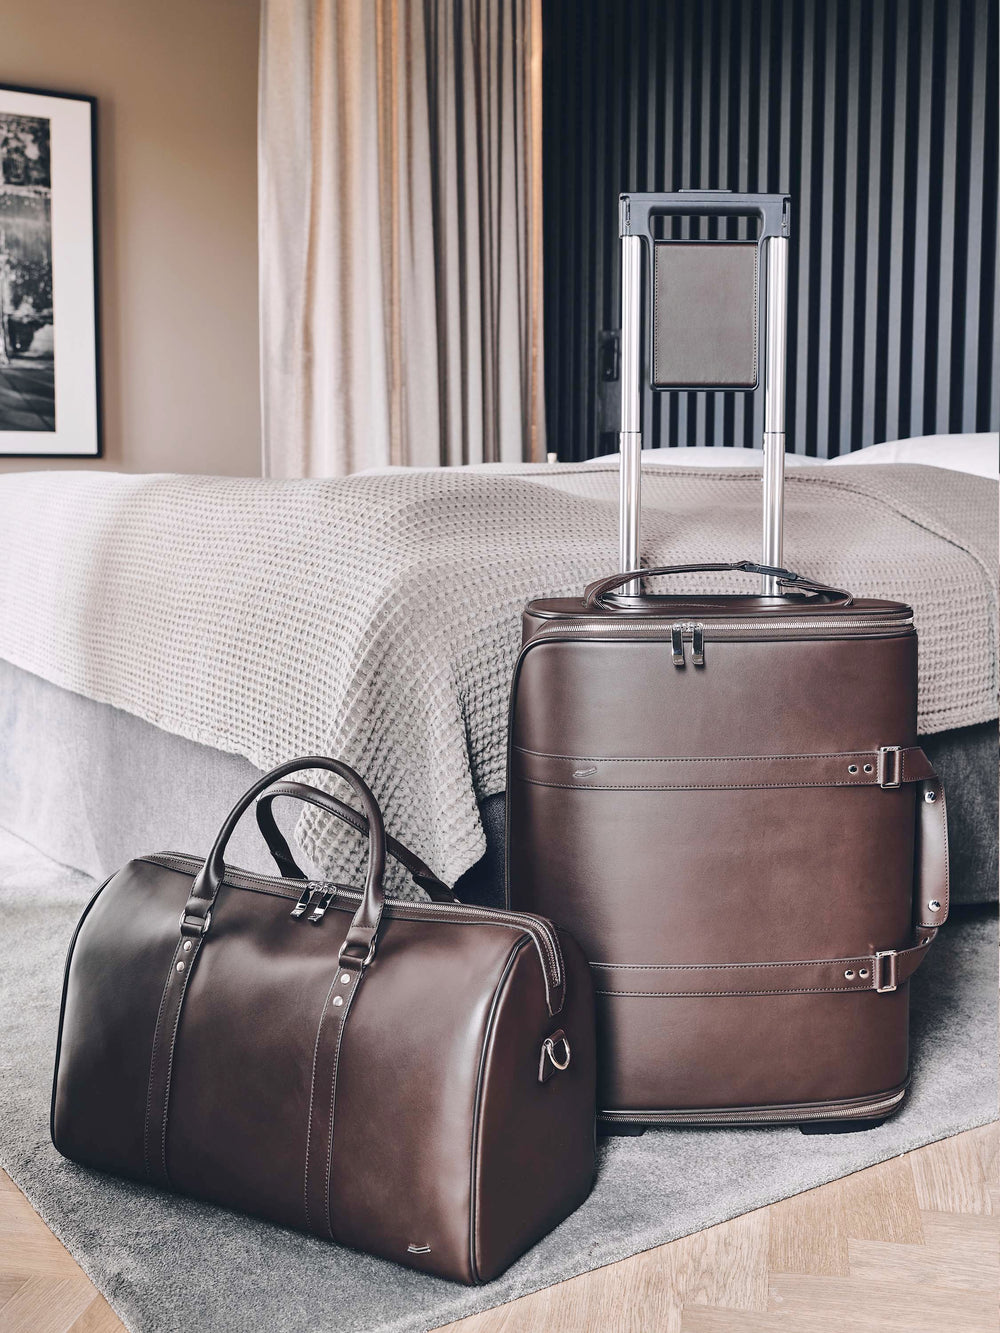 vocier f34 travel duffle set in brown leather